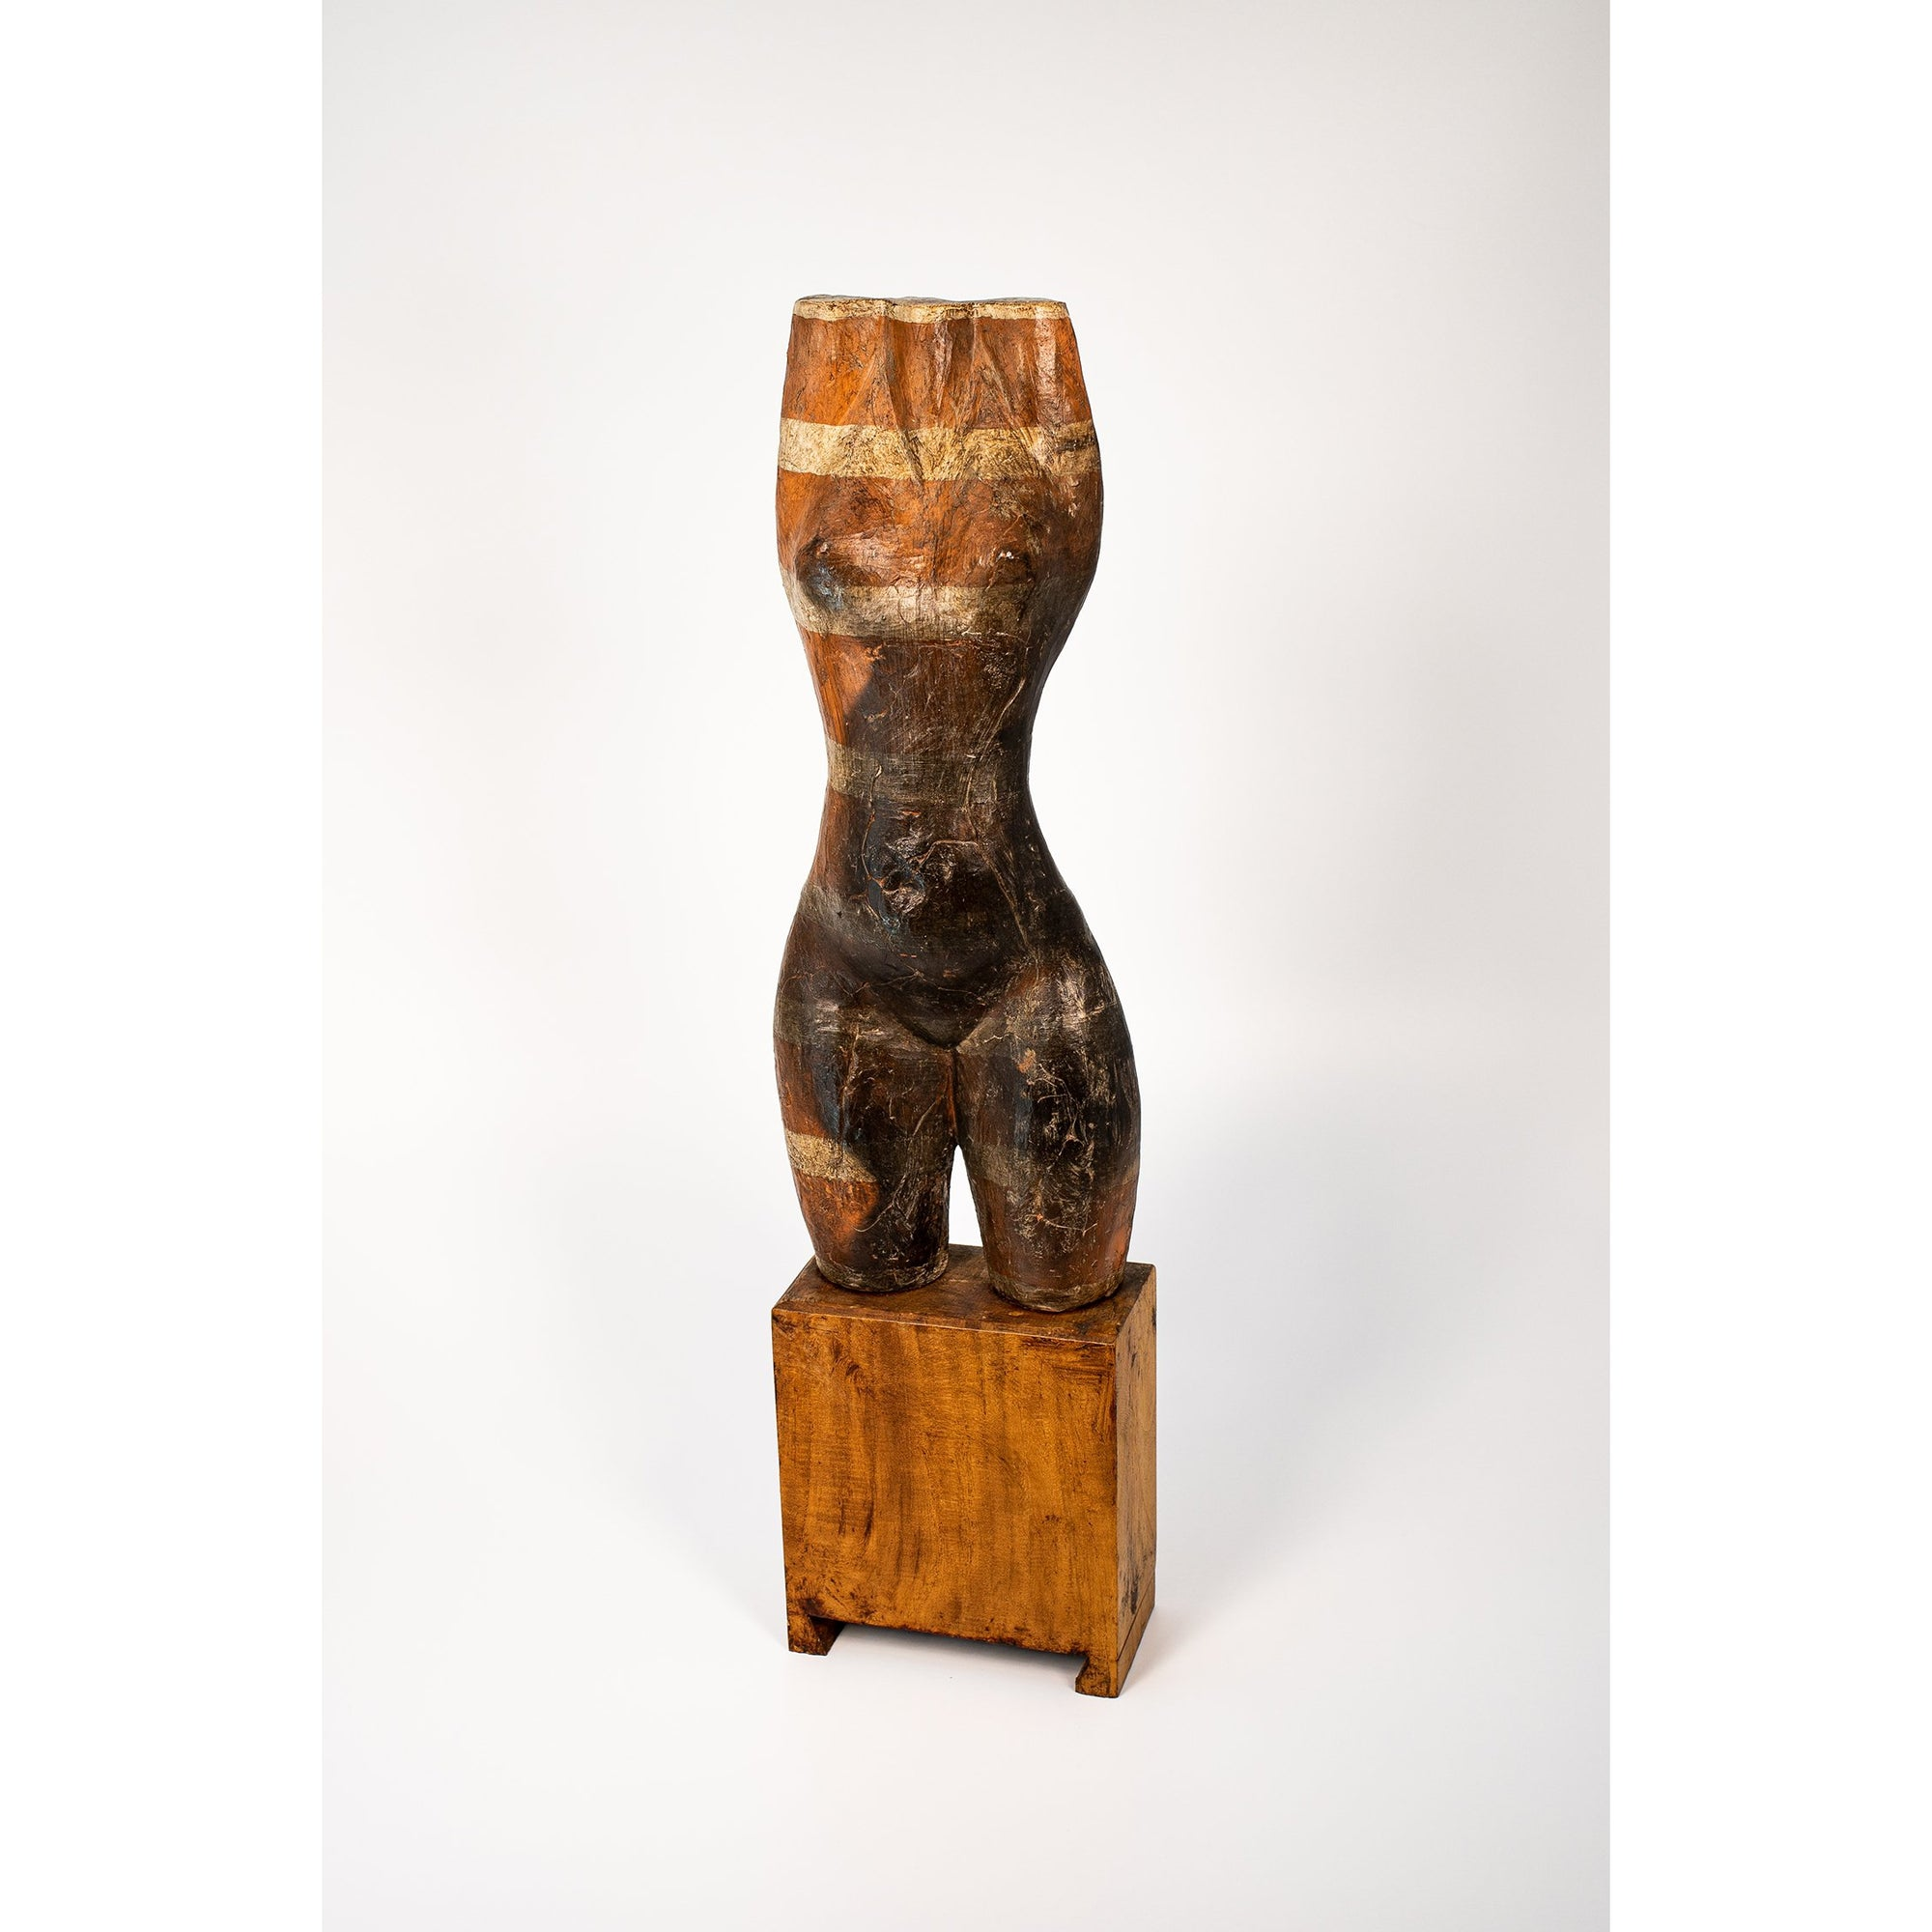 Long, Glazed terracotta standing figure on a block, by Sophie Howard, available from Padstow Gallery, Cornwall